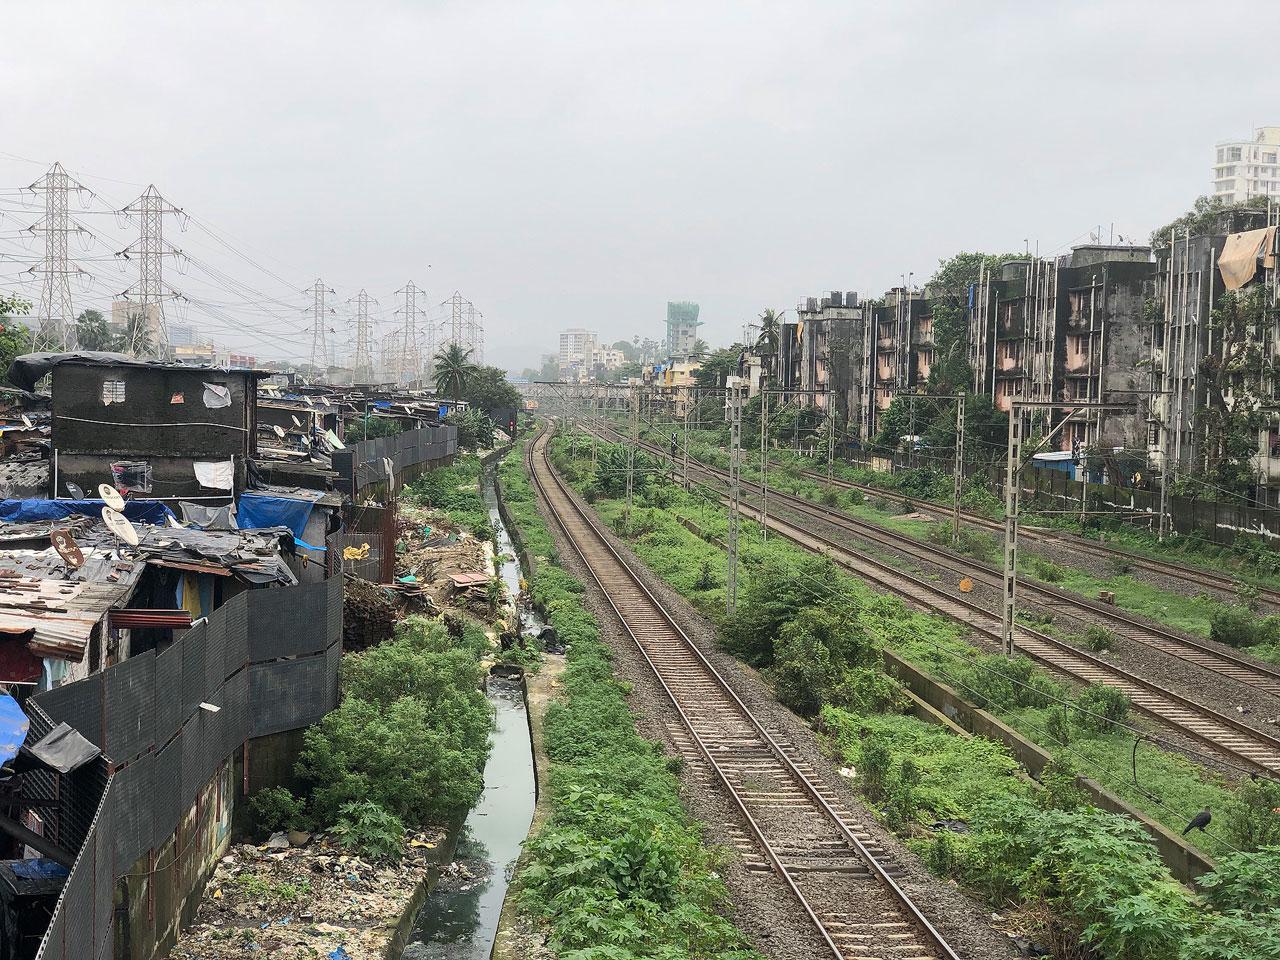 Other side of the tracks